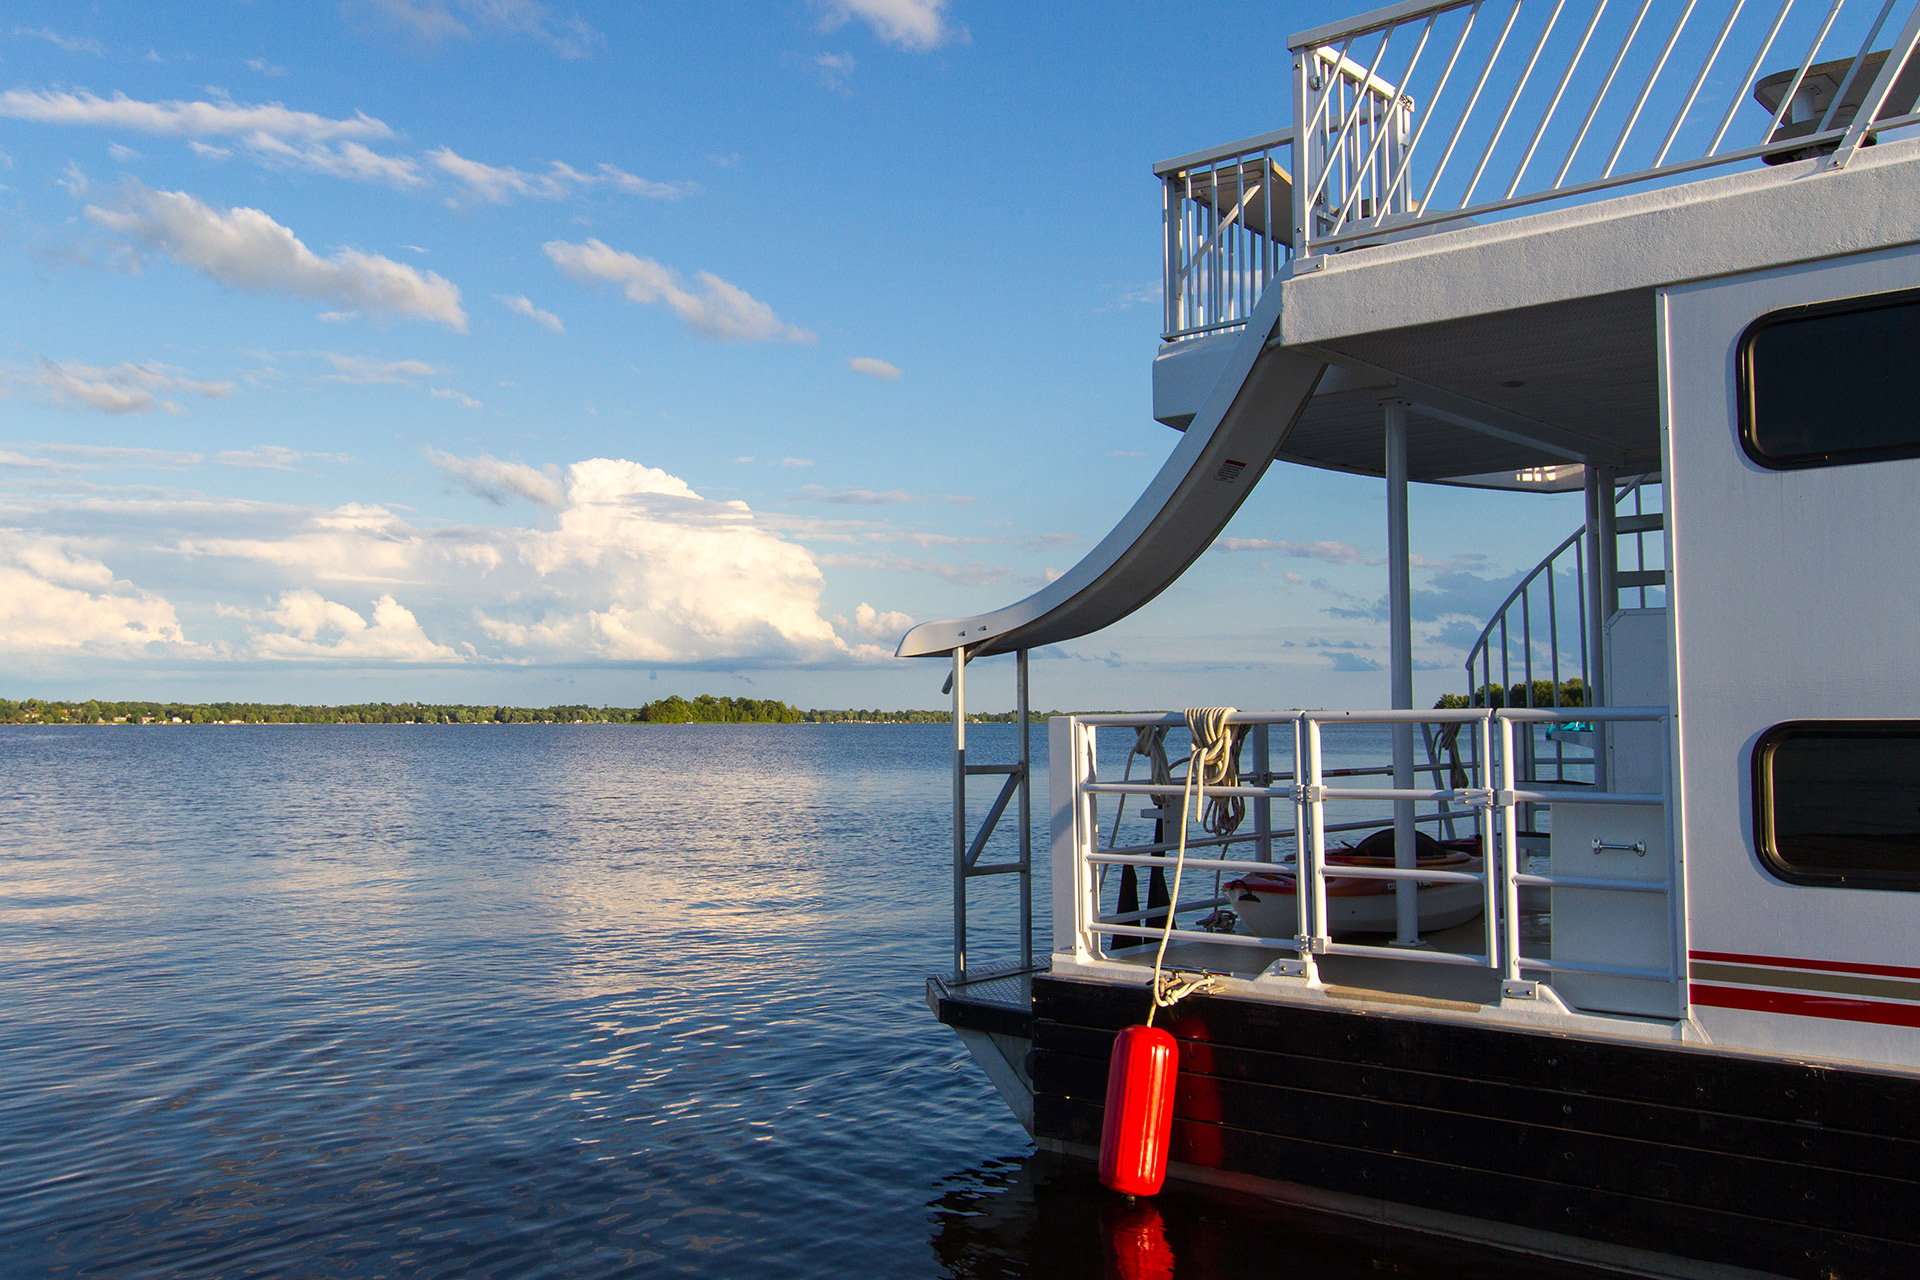 Exploring the Trent-Severn Waterway by Houseboat